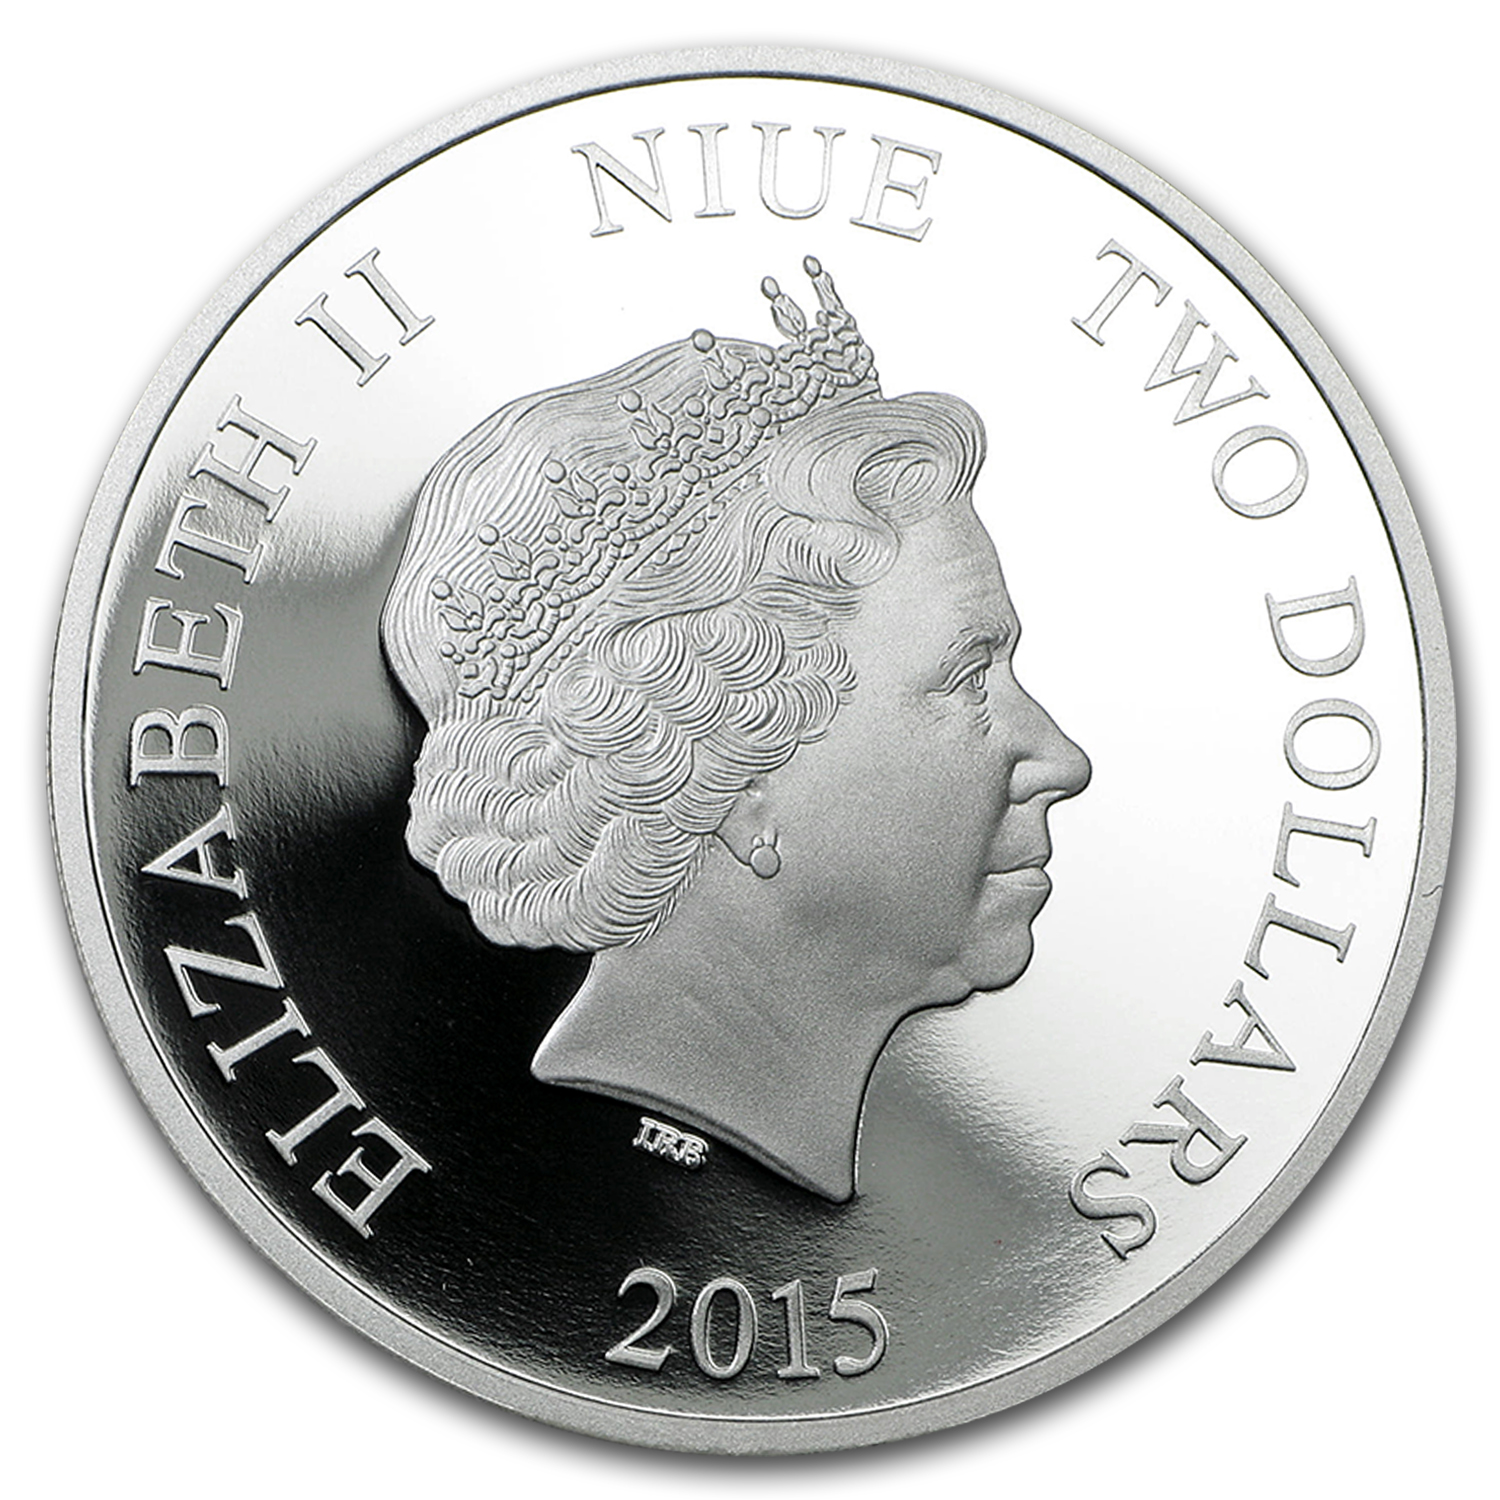 2015 Niue 1 oz Silver $2 Disney Princess Ariel